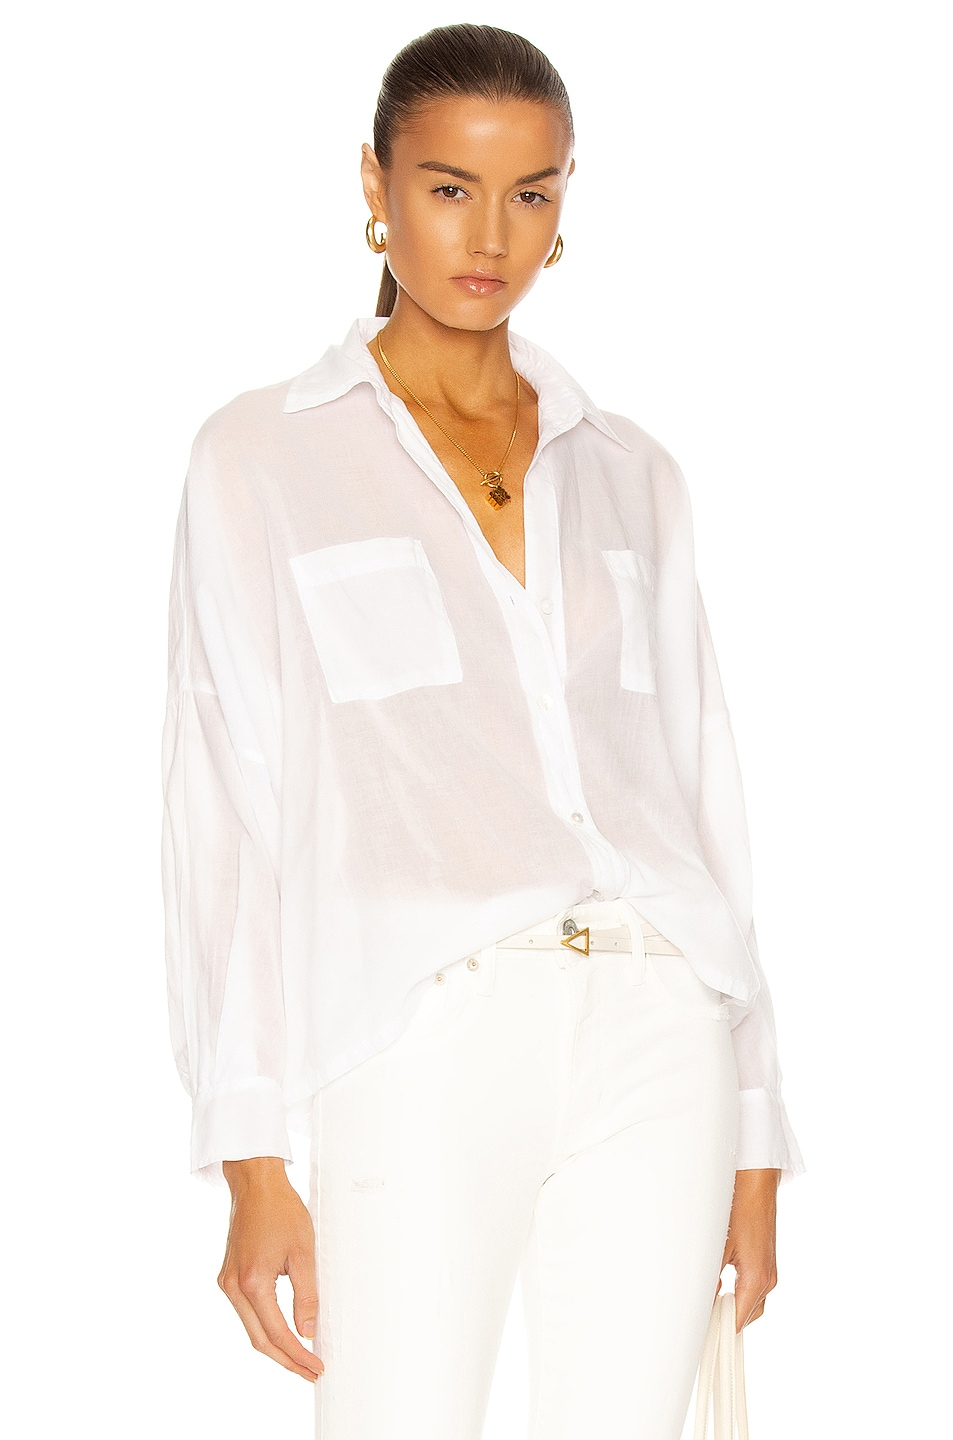 Image 1 of Enza Costa Cotton Voile Handkerchief Shirt in White